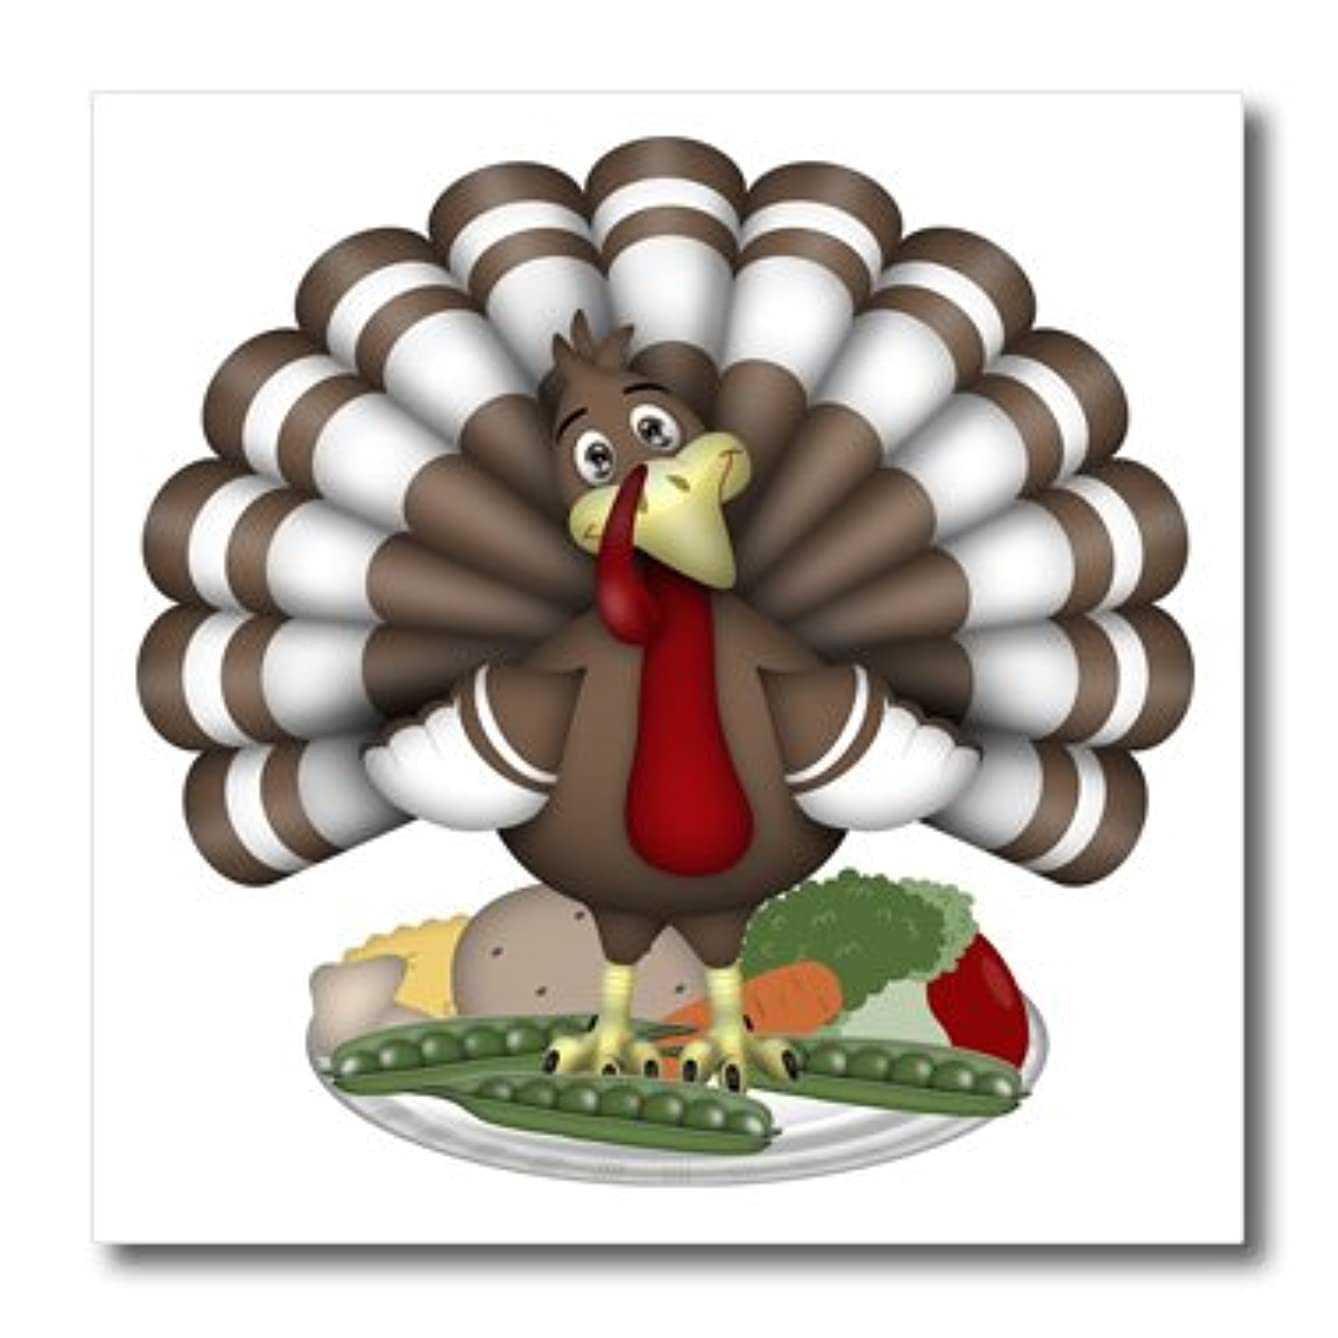 3dRose ht_216933_2 Cute Large Brown and White Thanksgiving Turkey on Vegetables Iron on Heat Transfer for White Material, 6